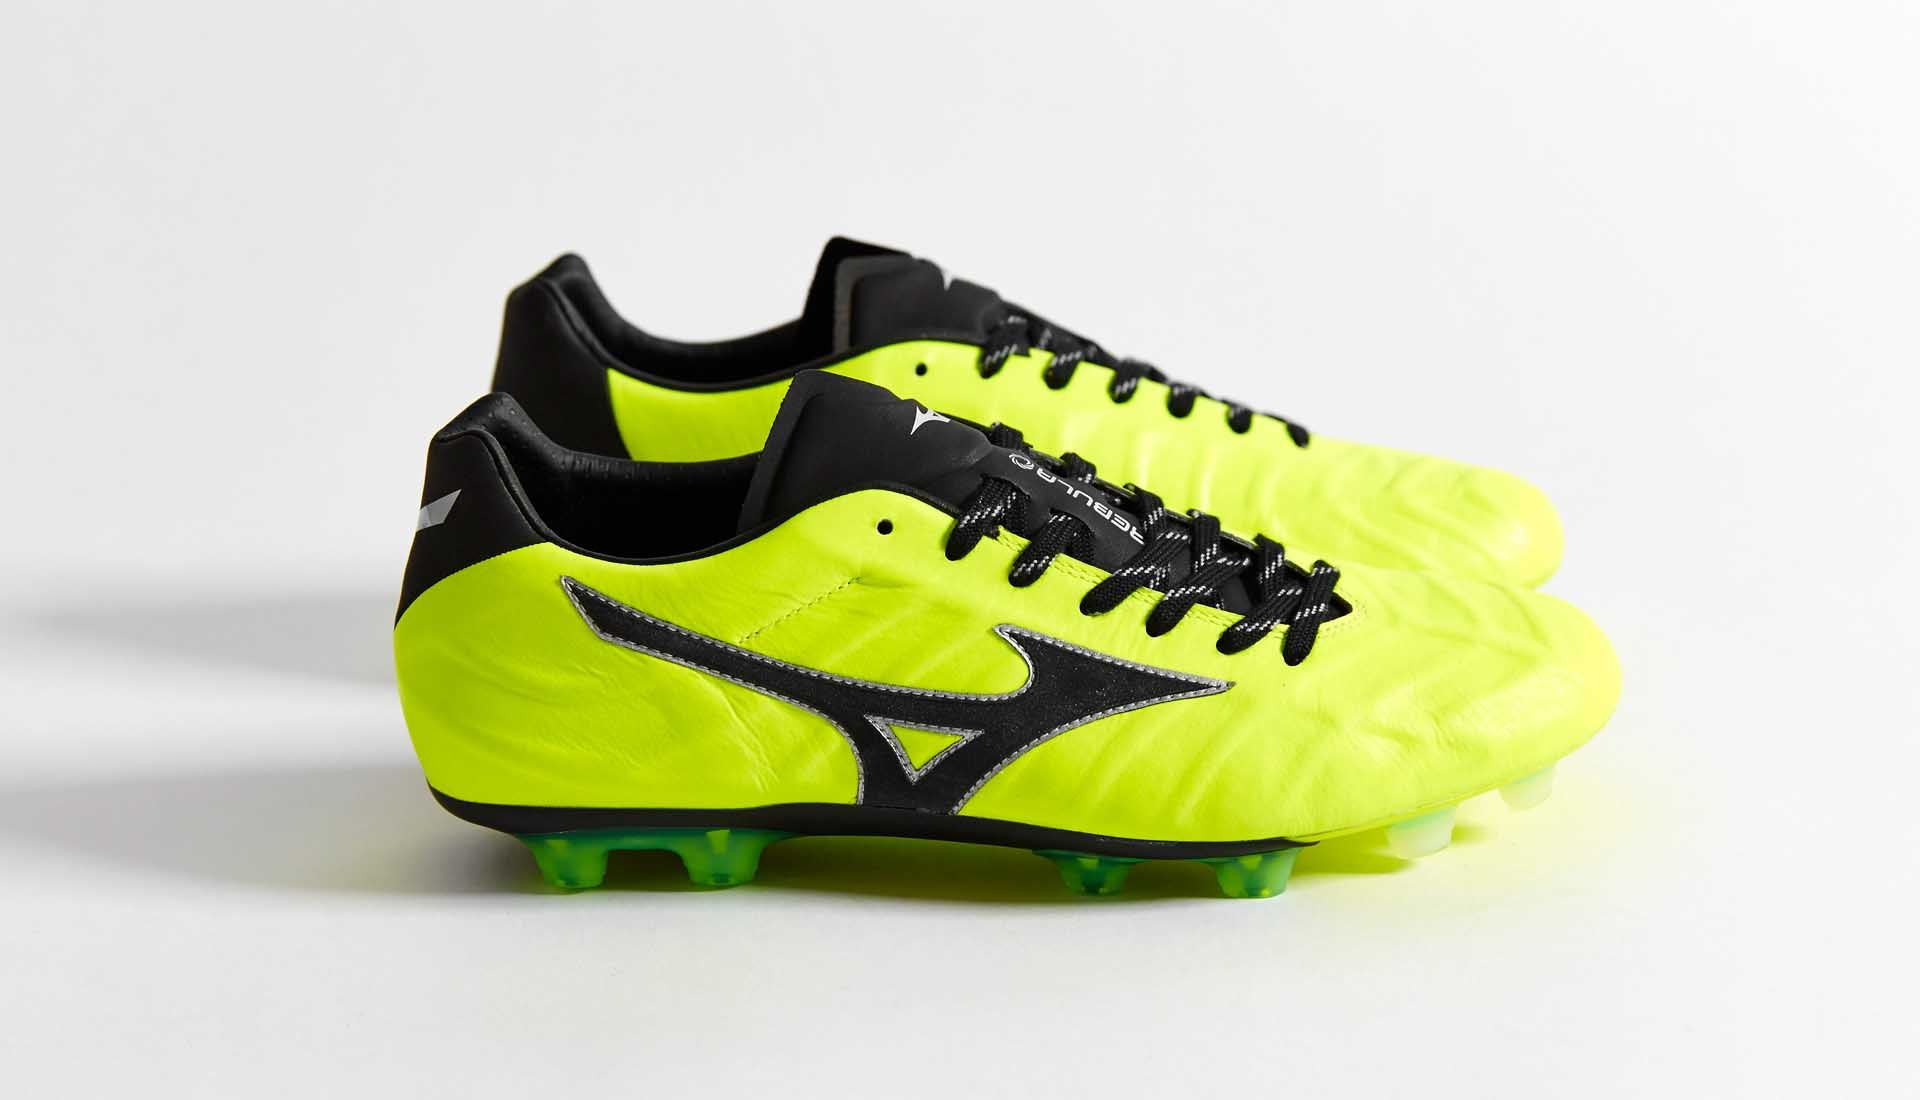 c54bb0c55072 Yellow Coat, Yellow Black, Soccer Shoes, Football Boots, Cleats, Sports,